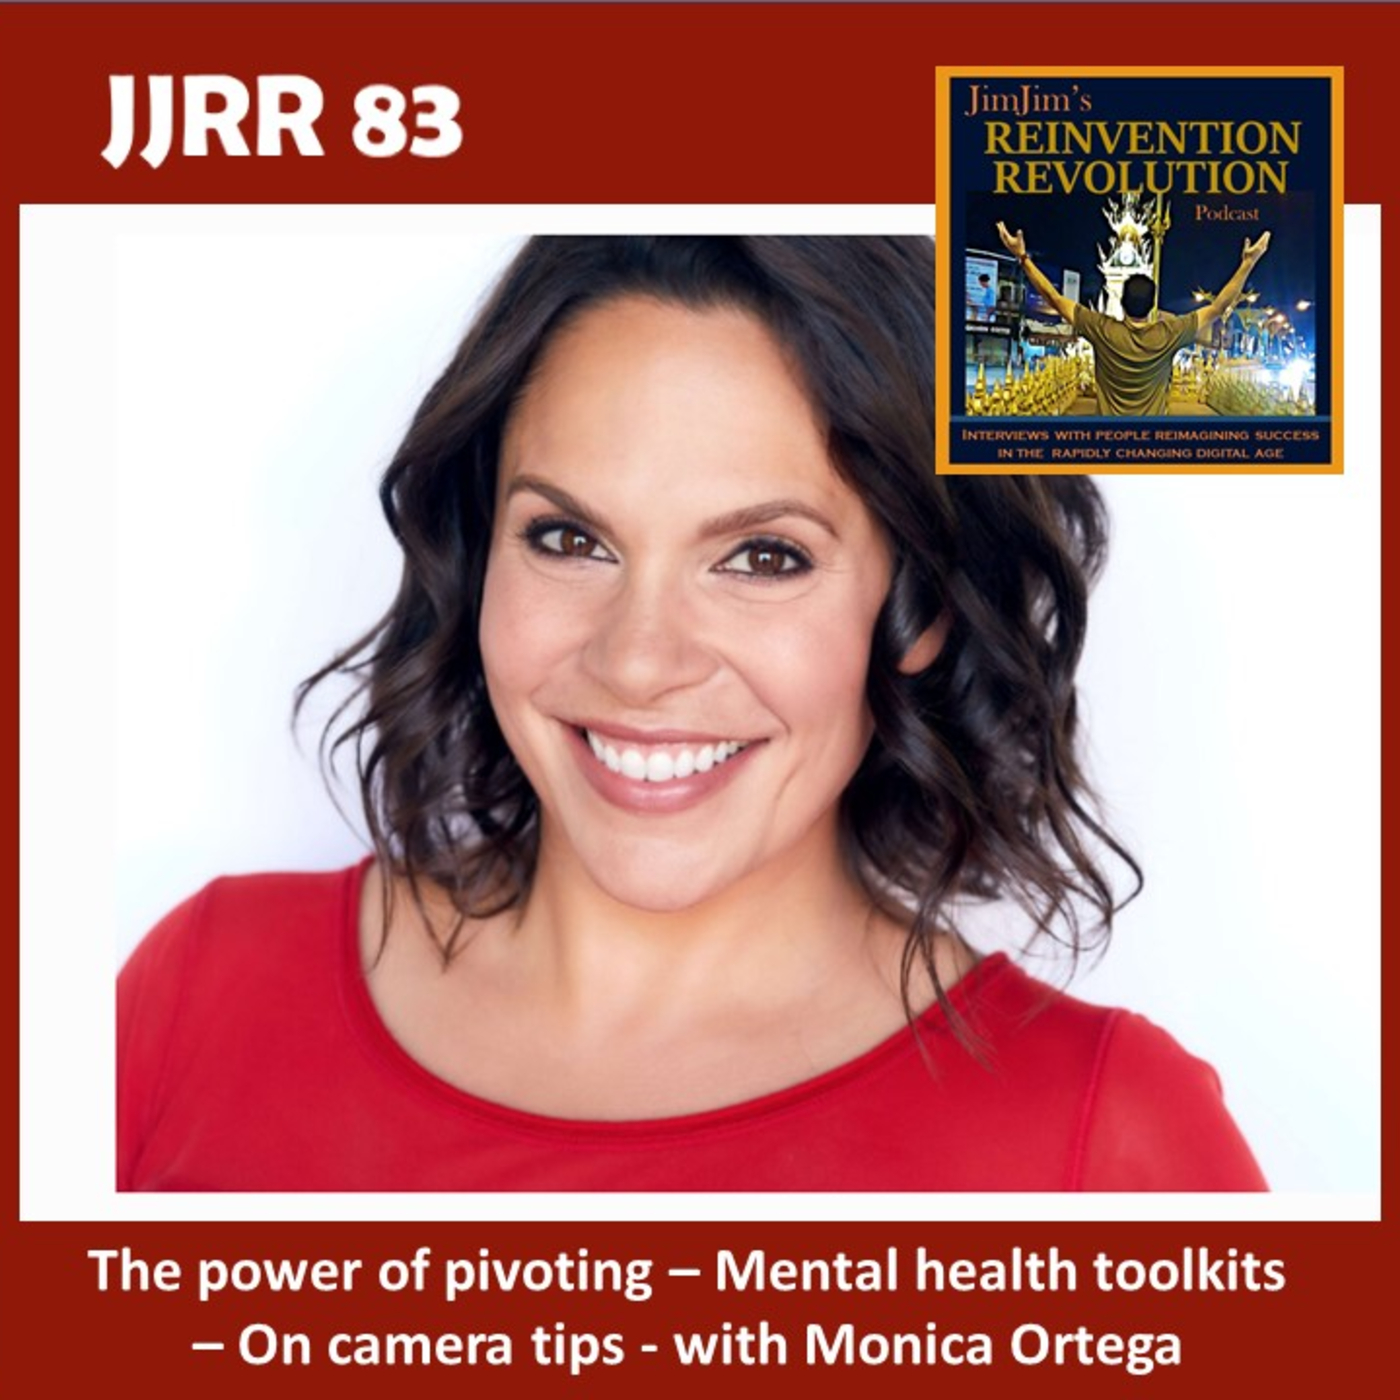 JJRR 83 – The power of pivoting – Mental health  toolkits – On camera tips – with Monica Ortega